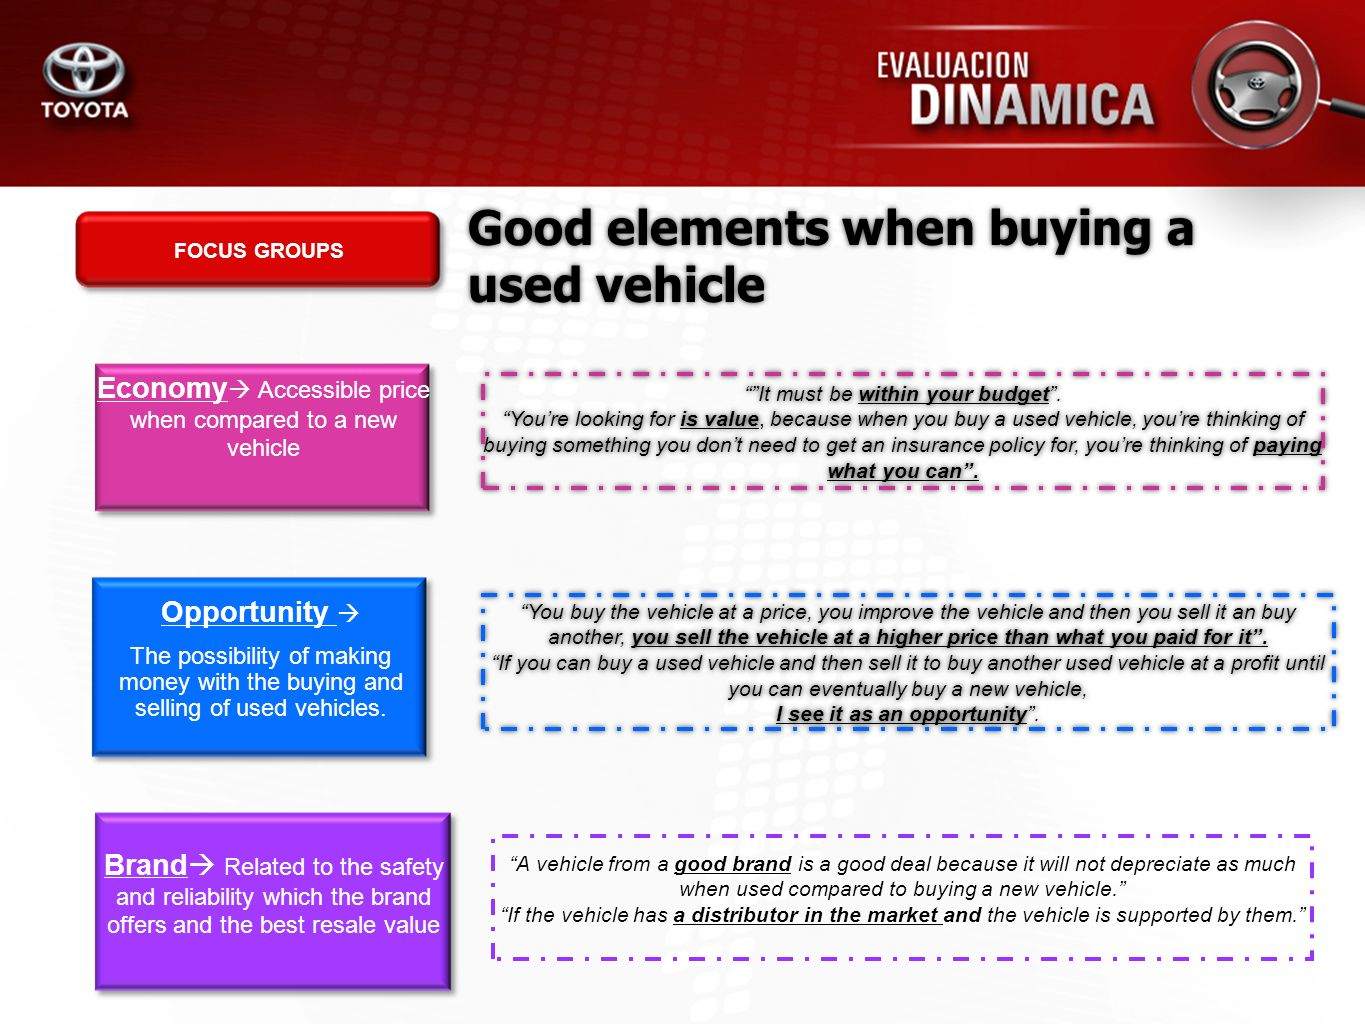 Good elements when buying a used vehicle